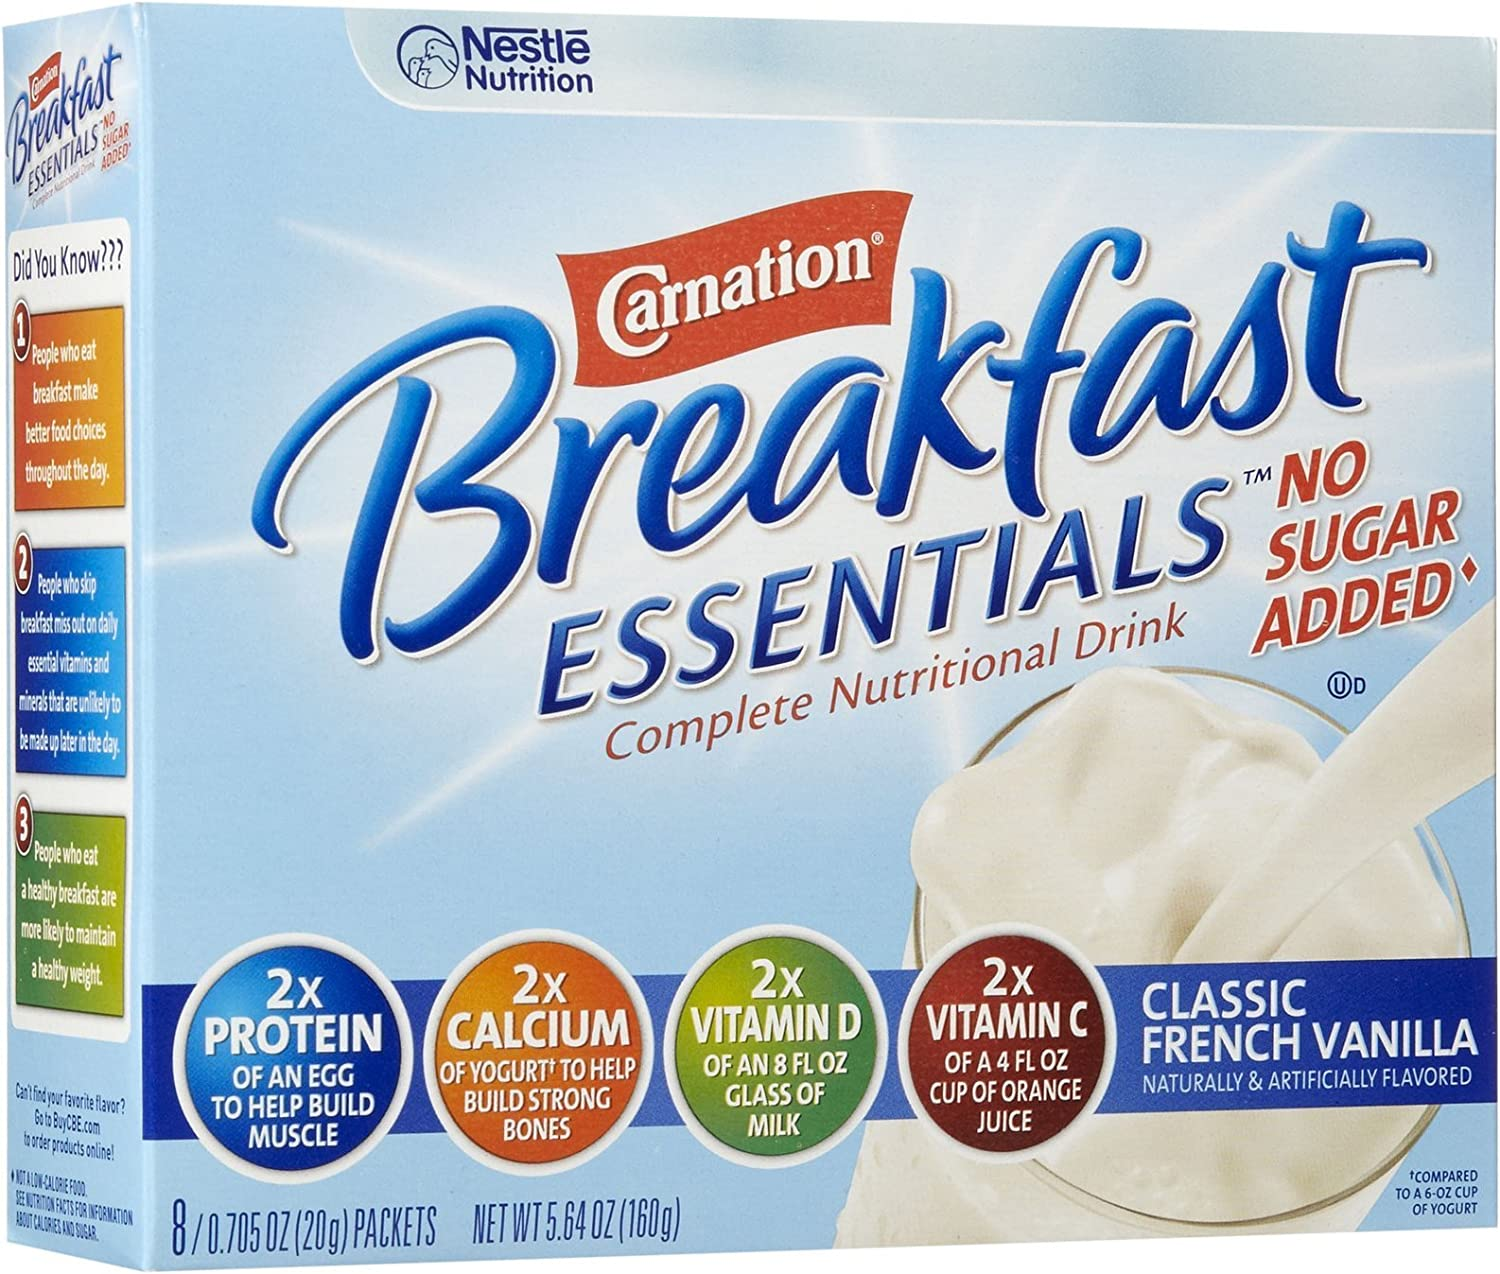 Carnation Breakfast Essentials, No Sugar Added French Vanilla, 0.705 Ounce Packets, 8 Count Box